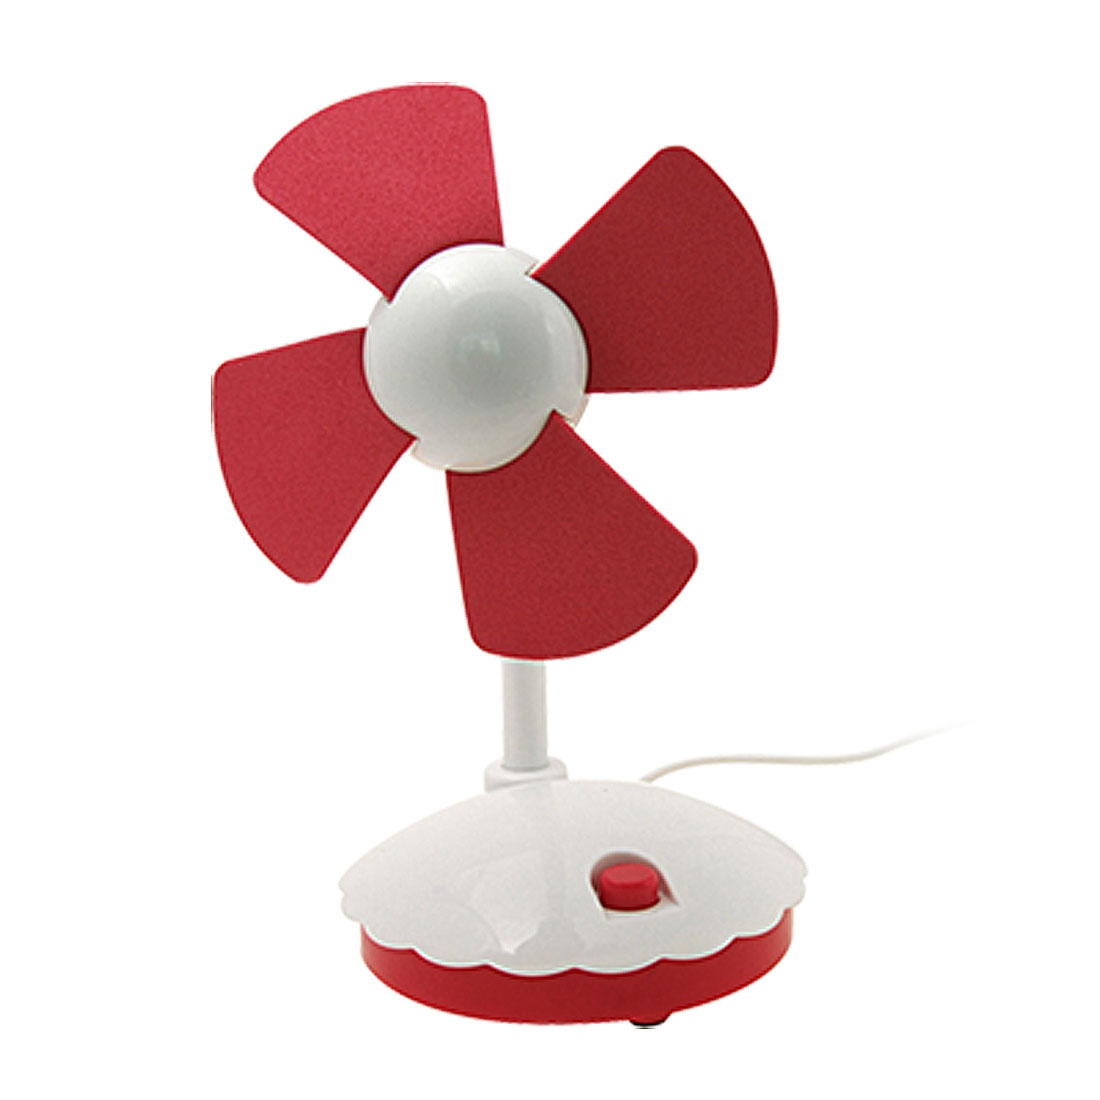 Sunflower Computer USB Desk Fan Red and White (HK-F2023)